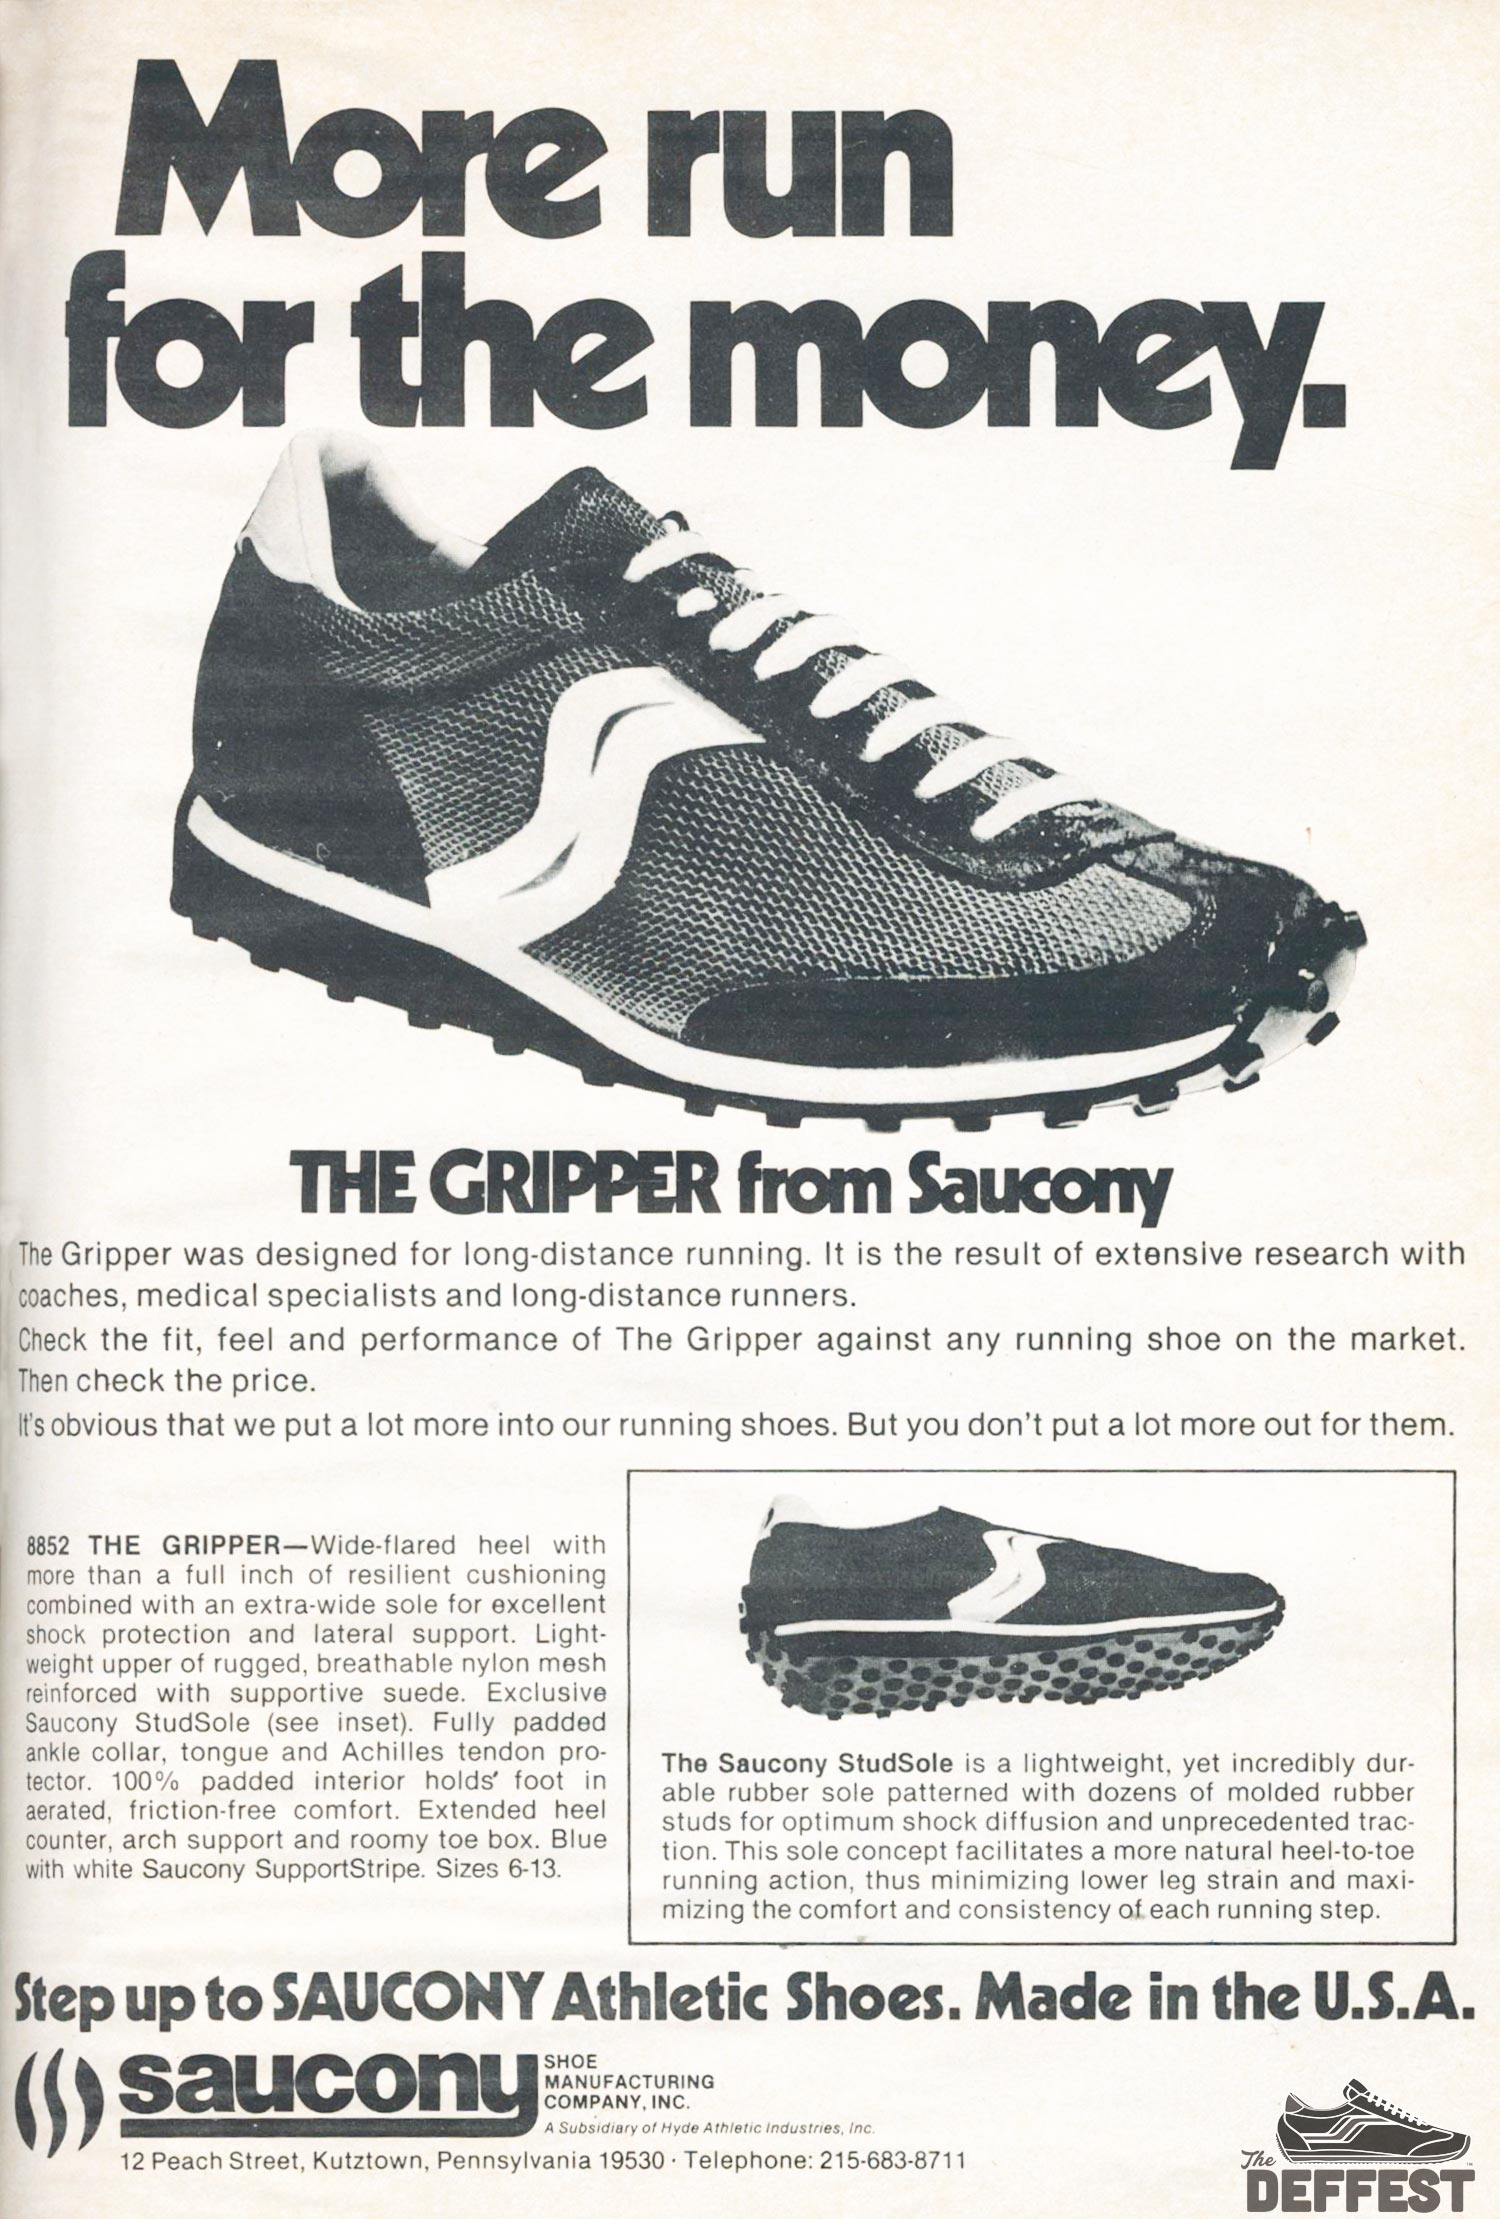 Vintage Sneakers The Deffest A Vintage And Retro Sneaker Blog Vintage Ads